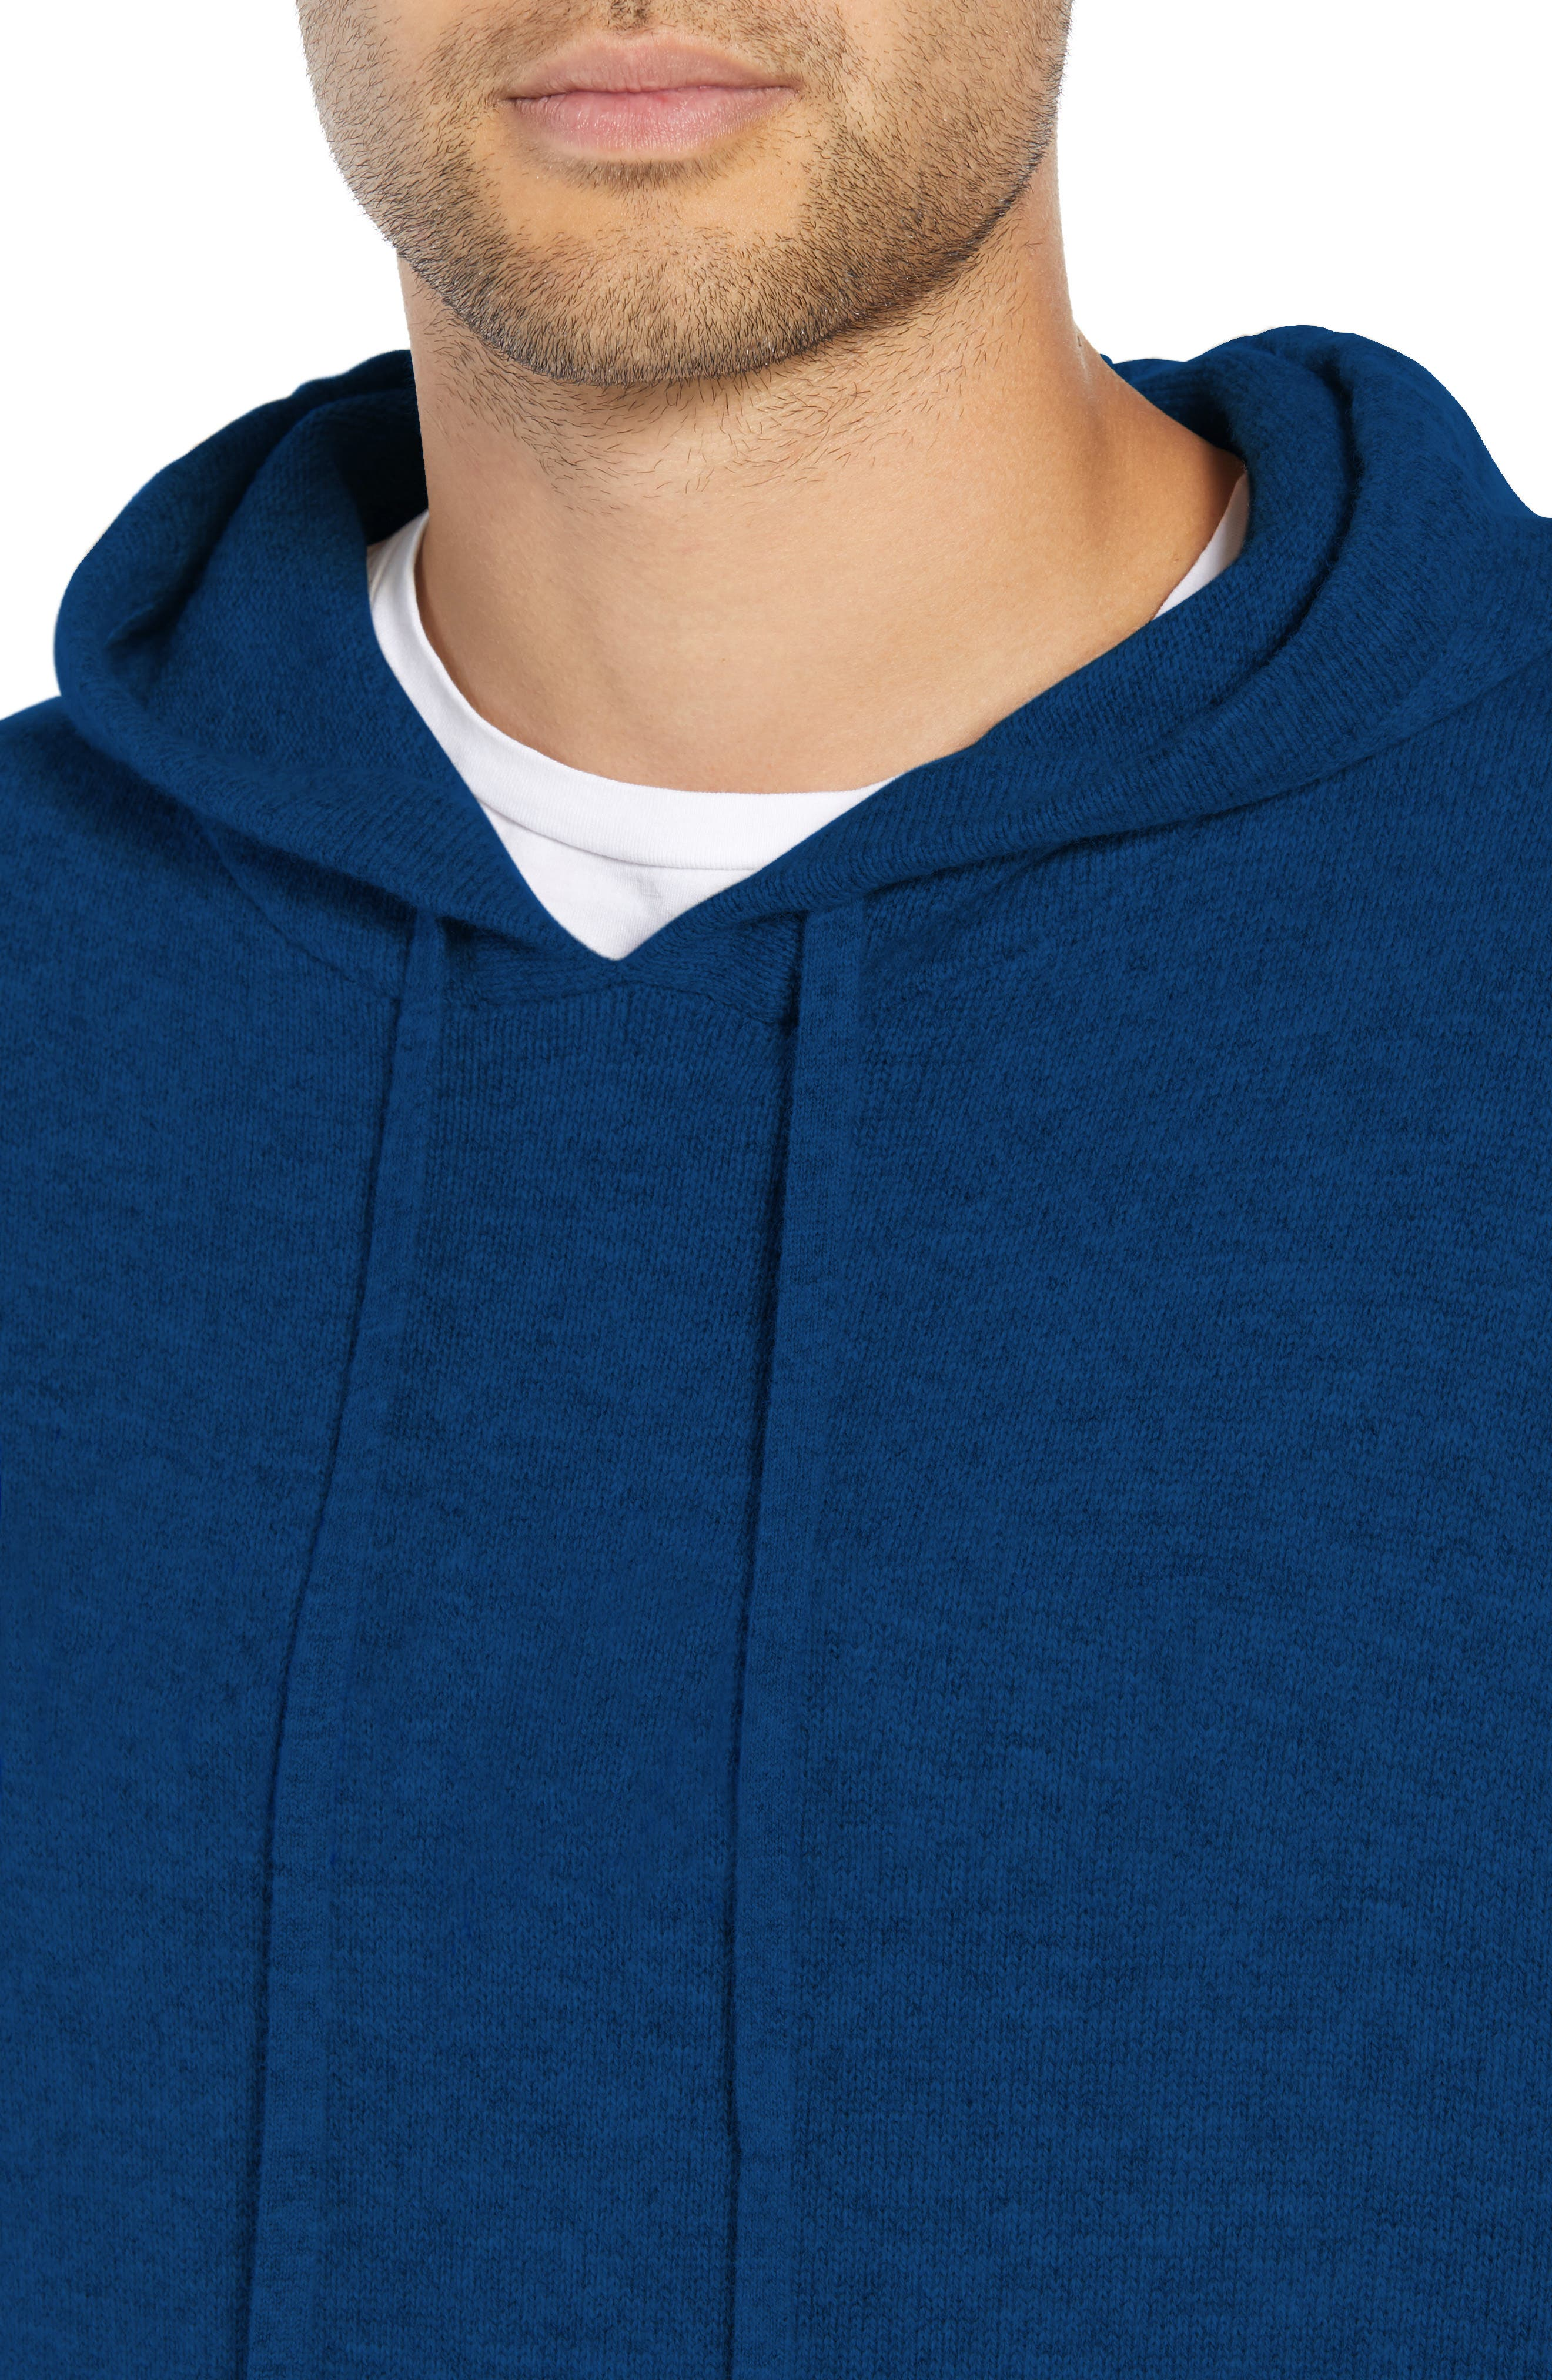 Classic Fit Hoodie Sweater,                             Alternate thumbnail 4, color,                             NAVY